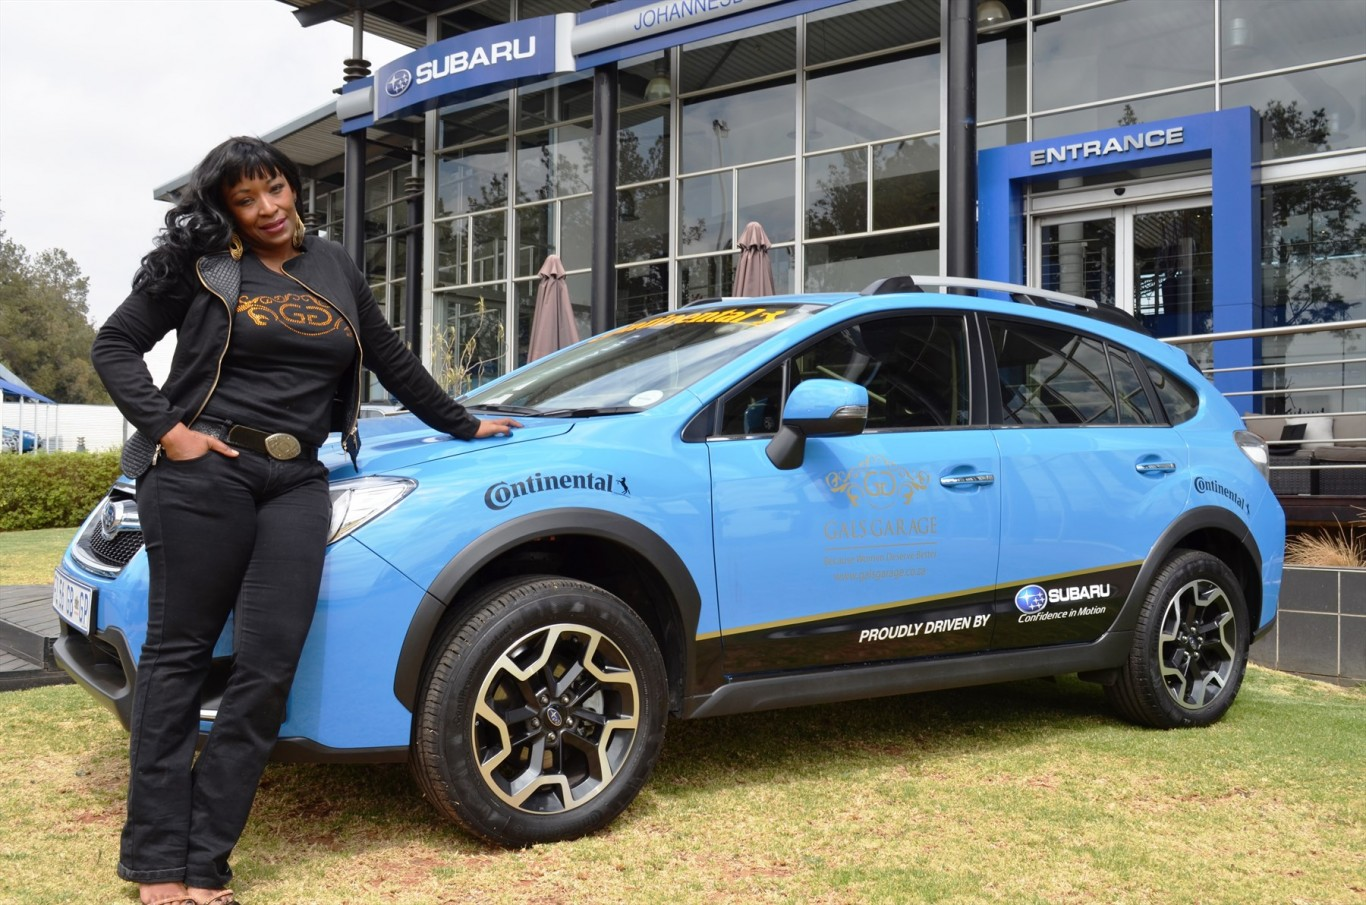 Subaru Welcomes Vuyi Mpofu as Brand Safety Ambassador